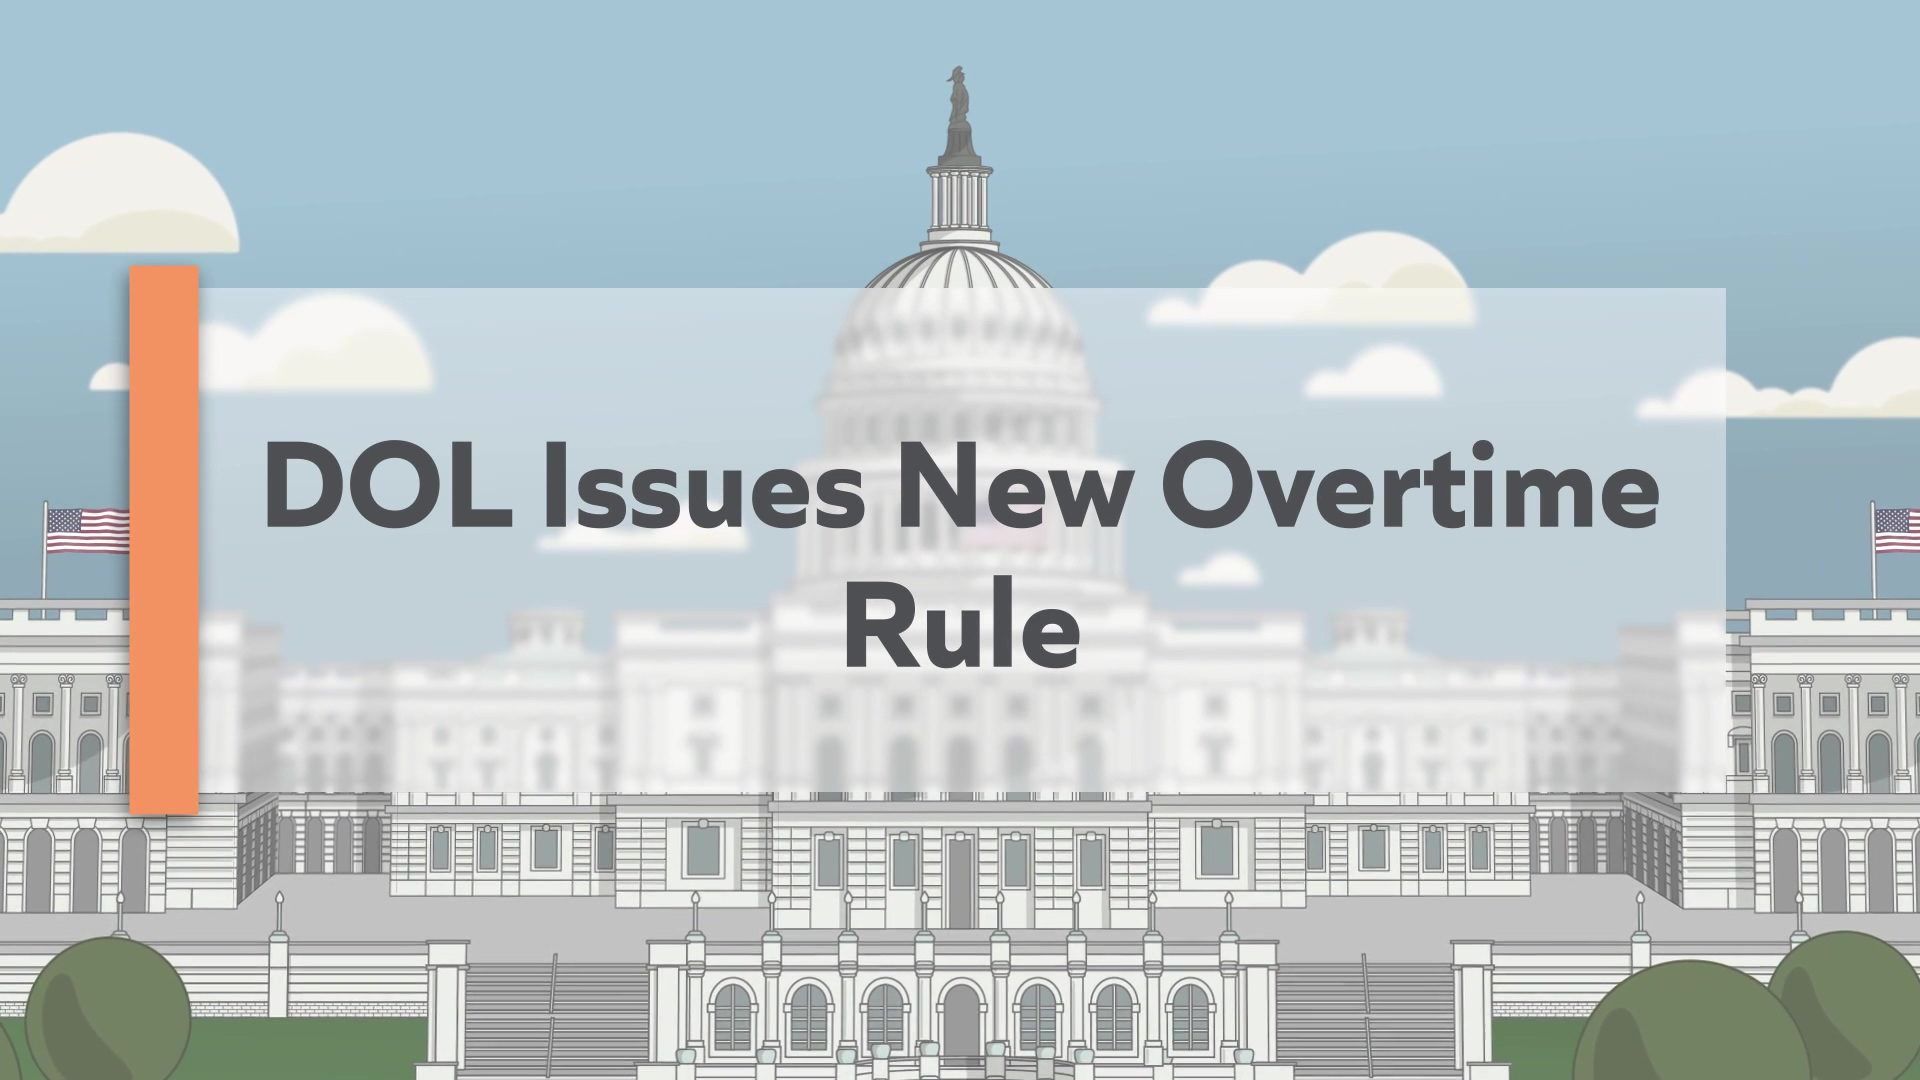 DOL Issues New Overtime Rule